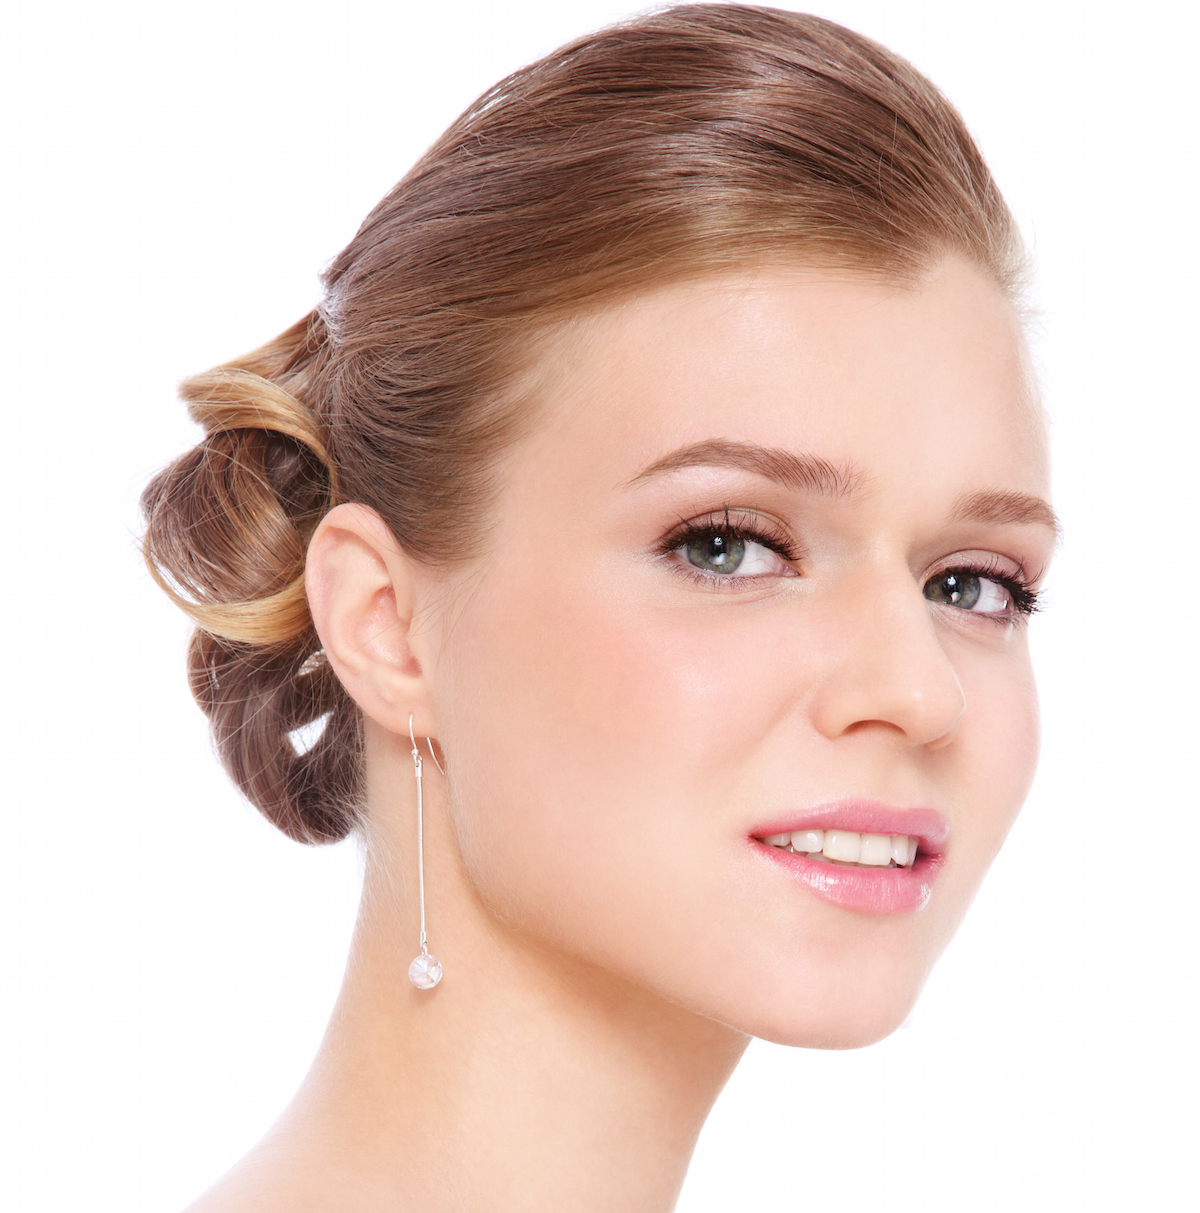 Beautiful woman with makeup on white background via Shutterstock